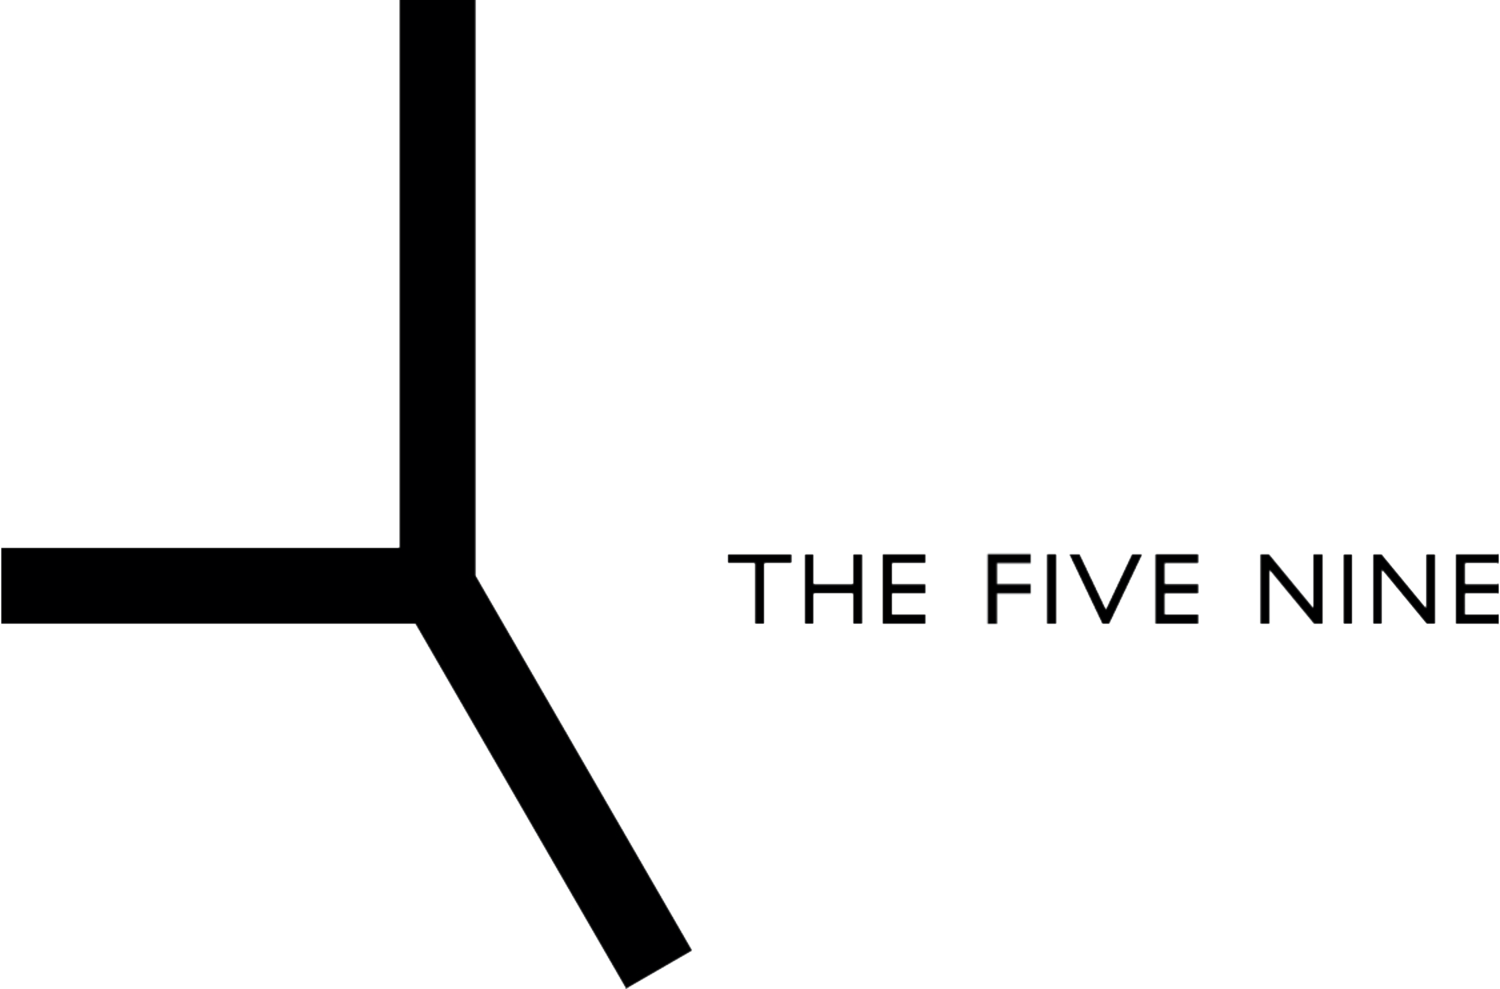 THE FIVE NINE